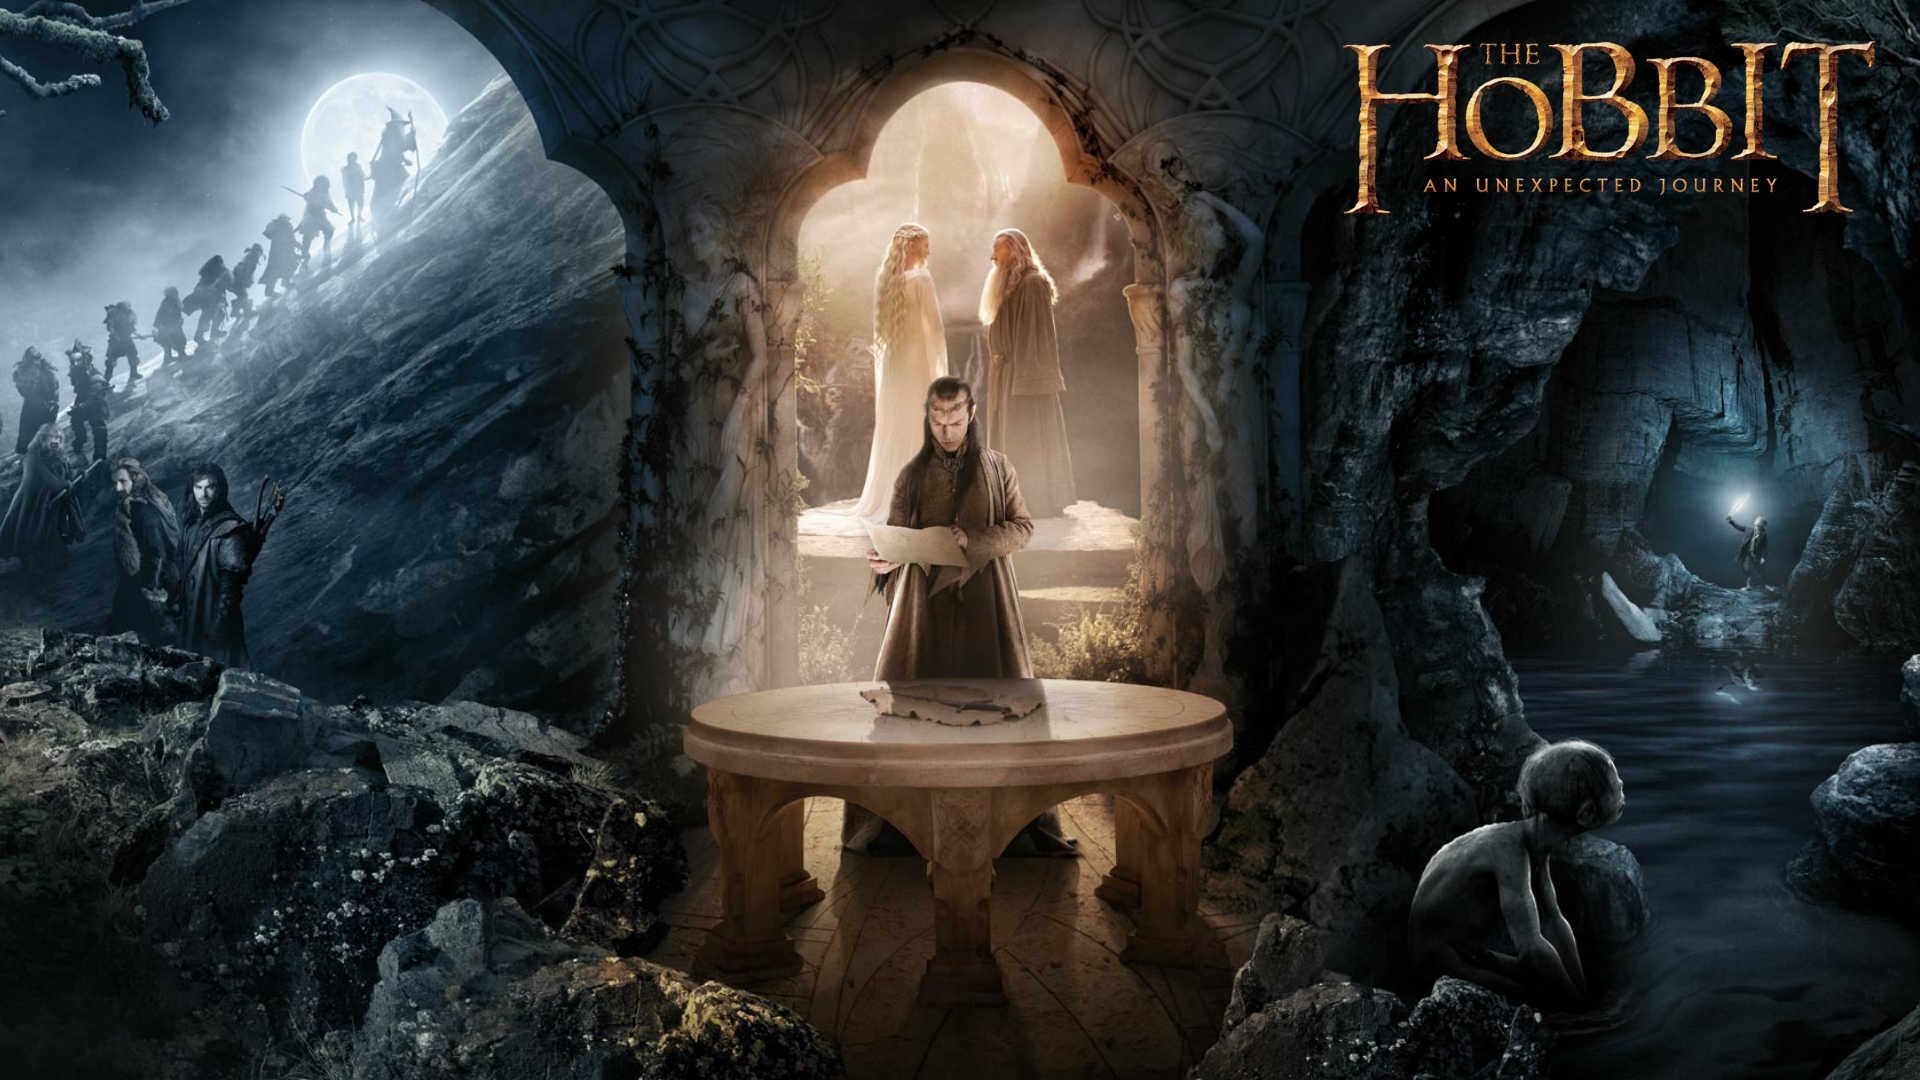 The Hobbit Desktop wallpapers 1920x1080 3 1920x1080